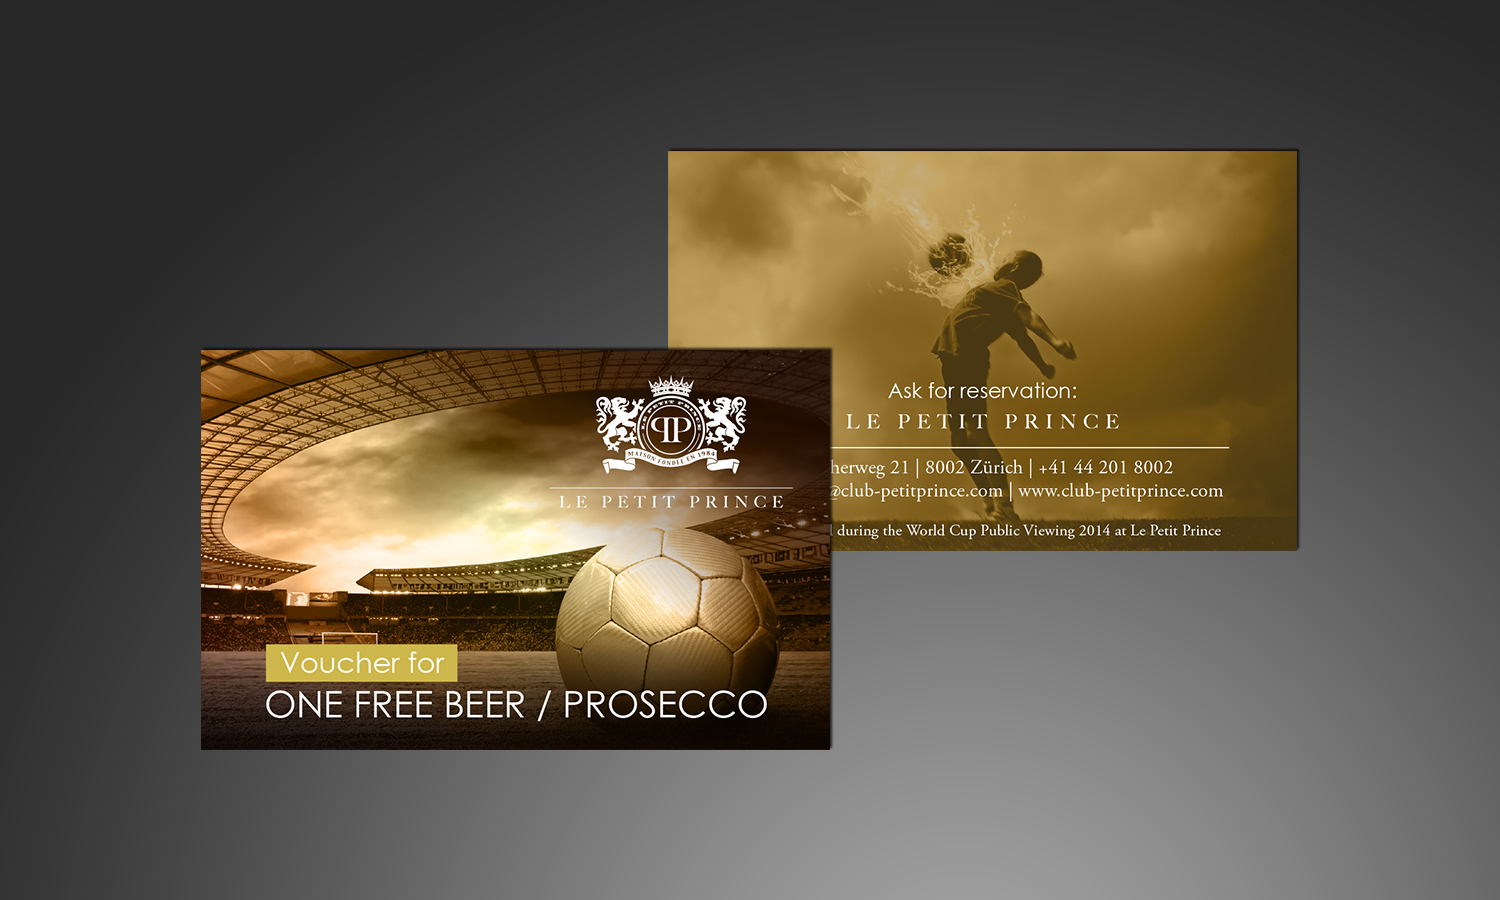 Beer & Prosecco Voucher - World Cup Public Viewing